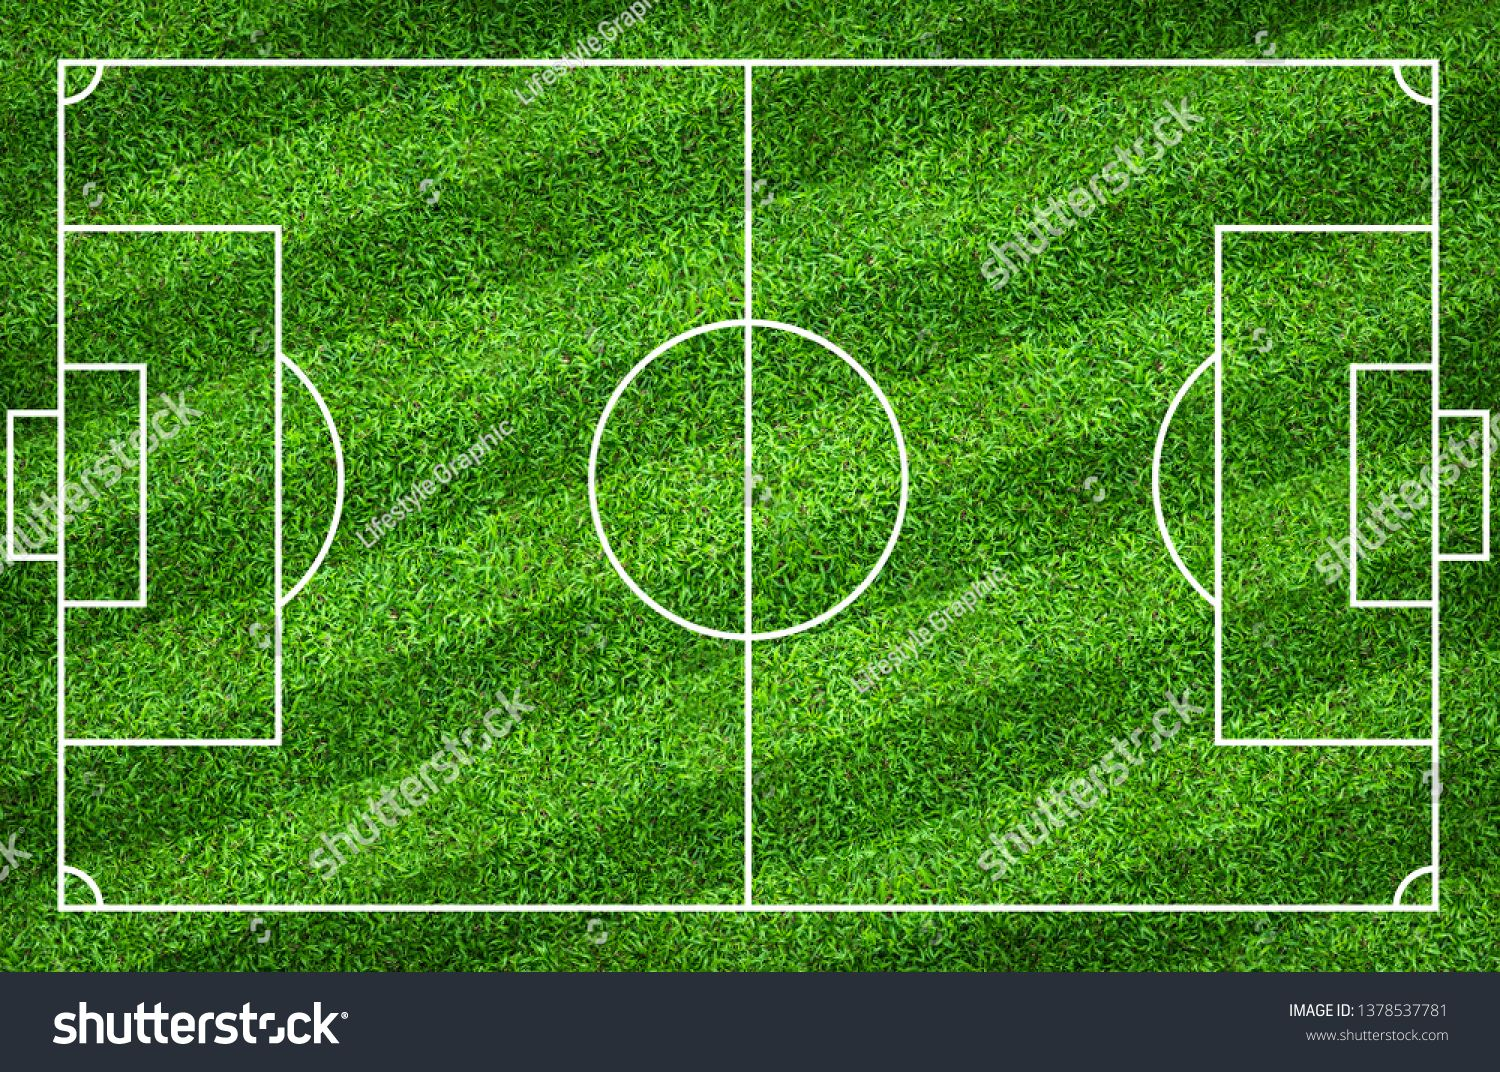 Football Field Or Soccer Field For Background Green Lawn Court For Create Sport Game Ad Affiliate Background Green So Soccer Field Football Field Field